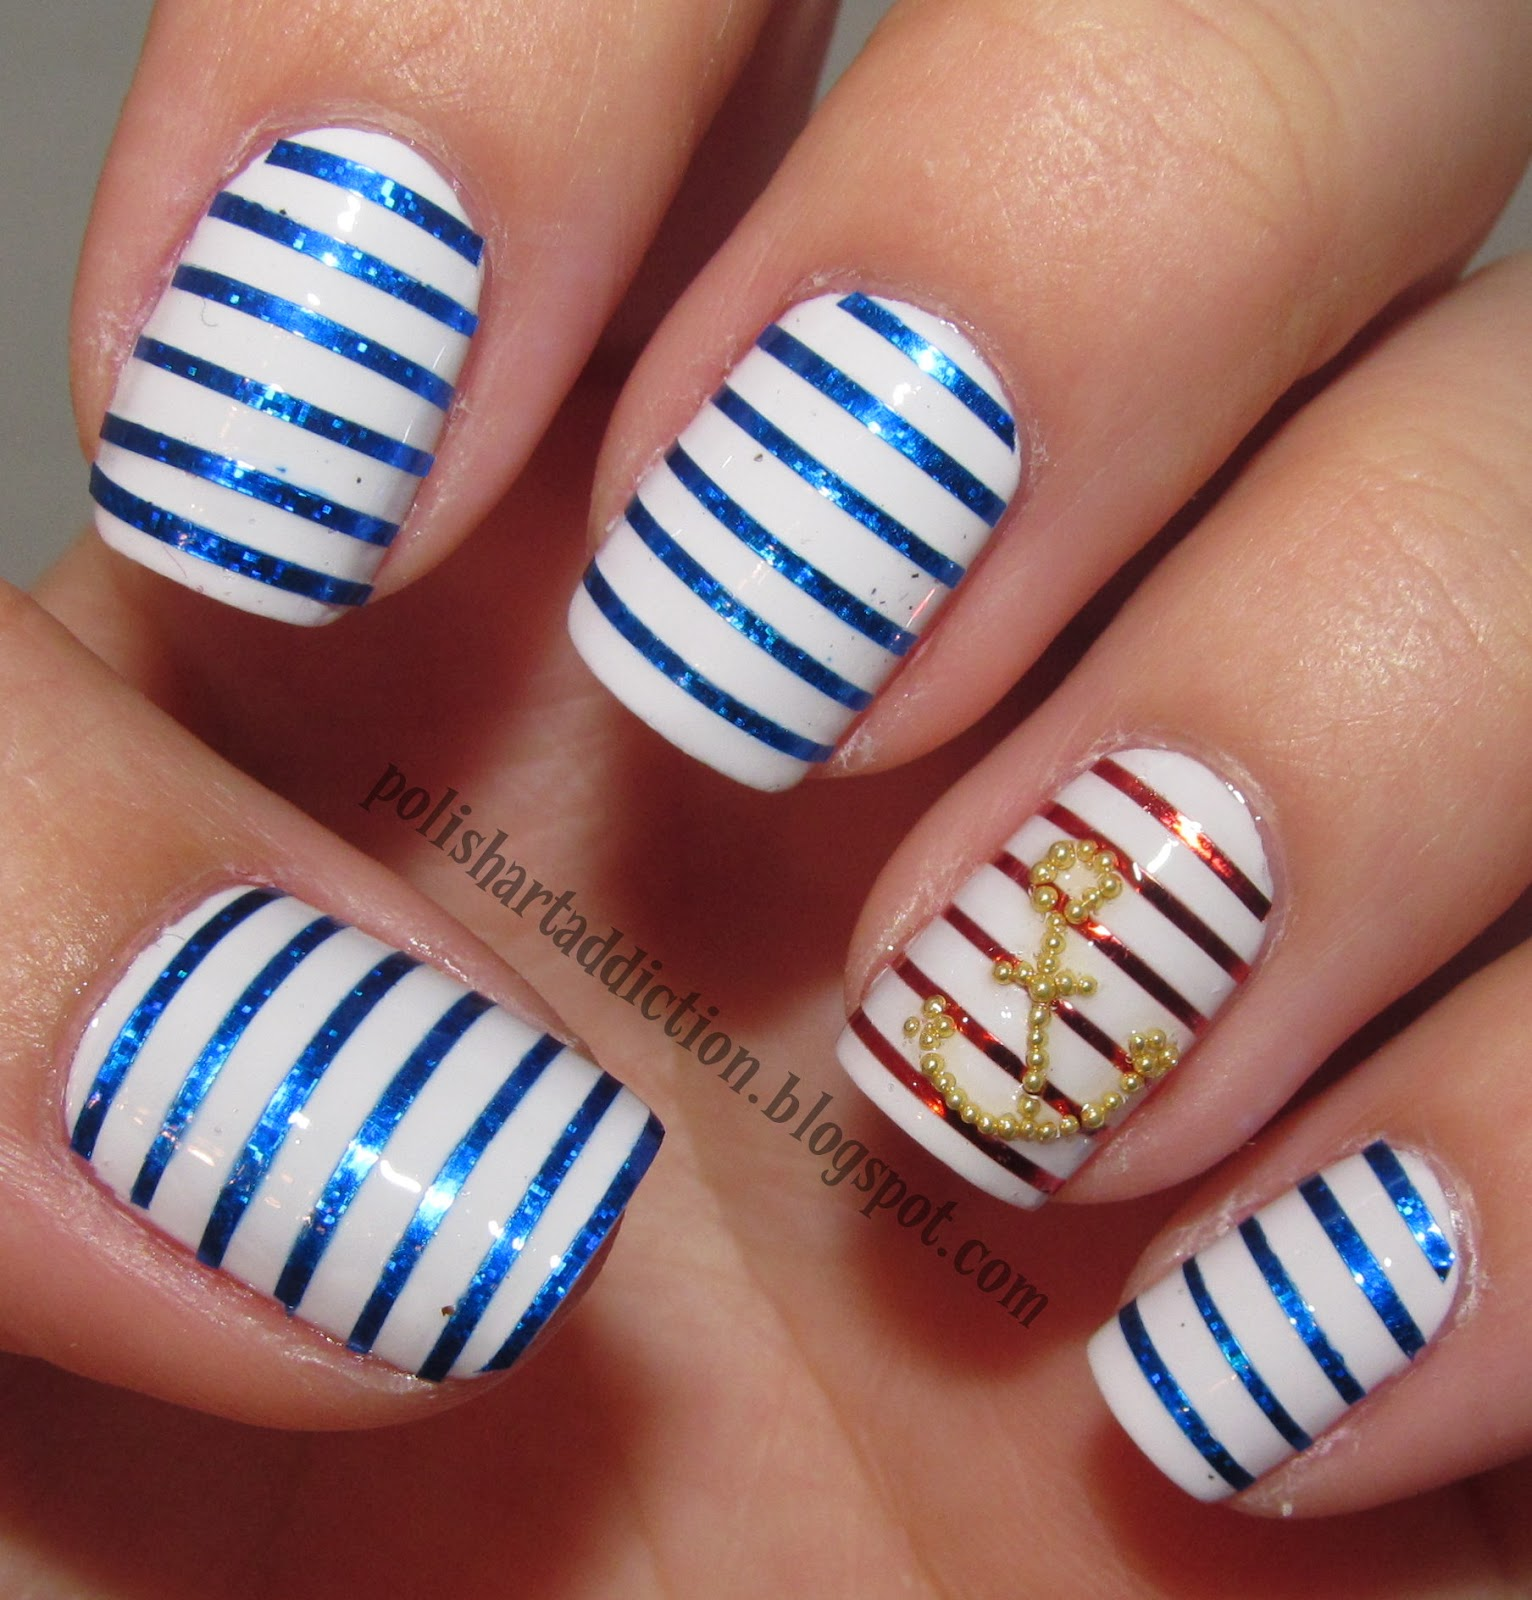 Tape Nail Art Designs: IT'S WHAT YOU LOVE ♡